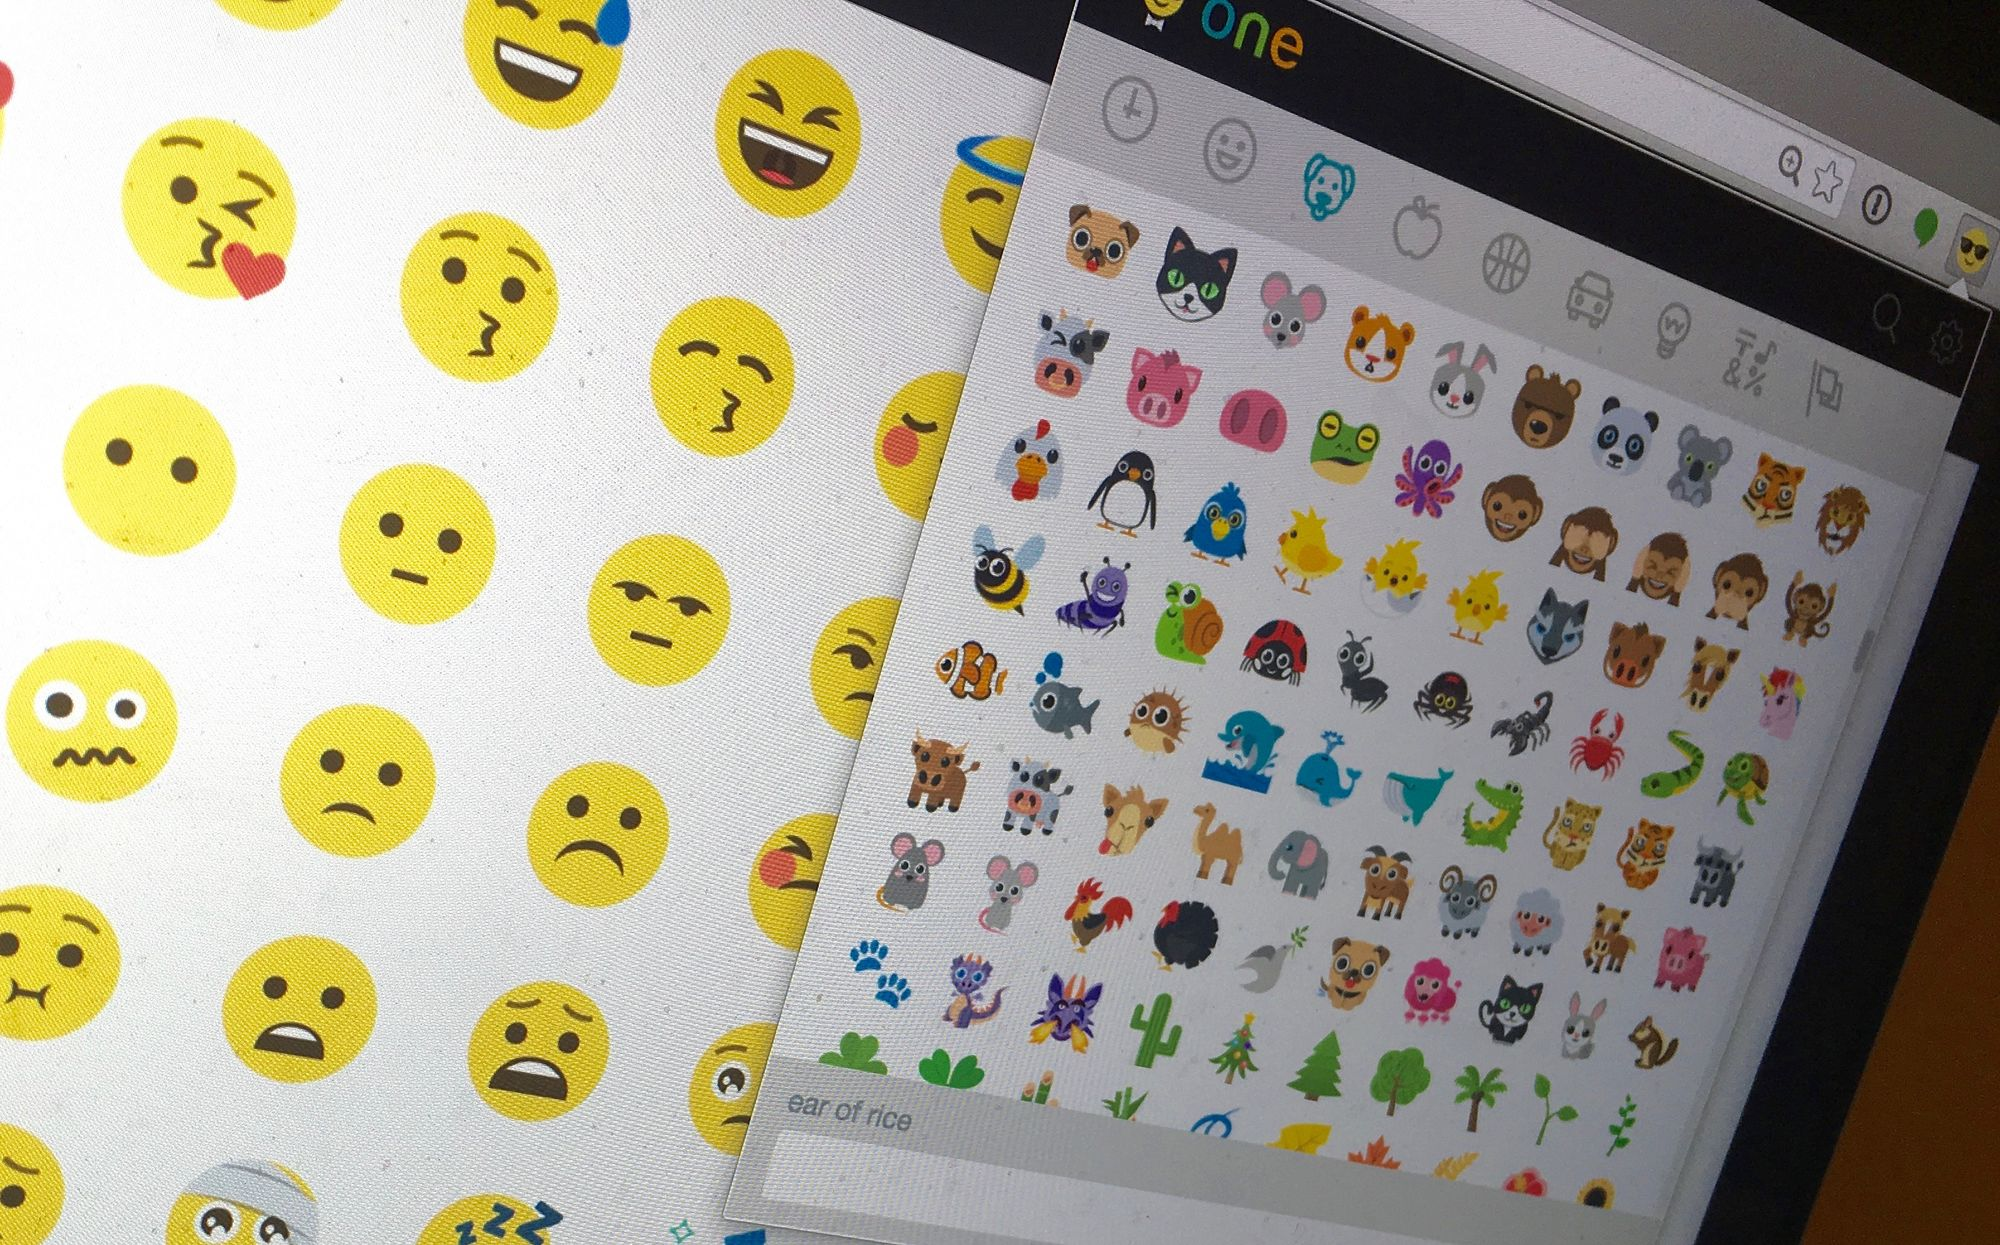 Emoji One for Chrome released